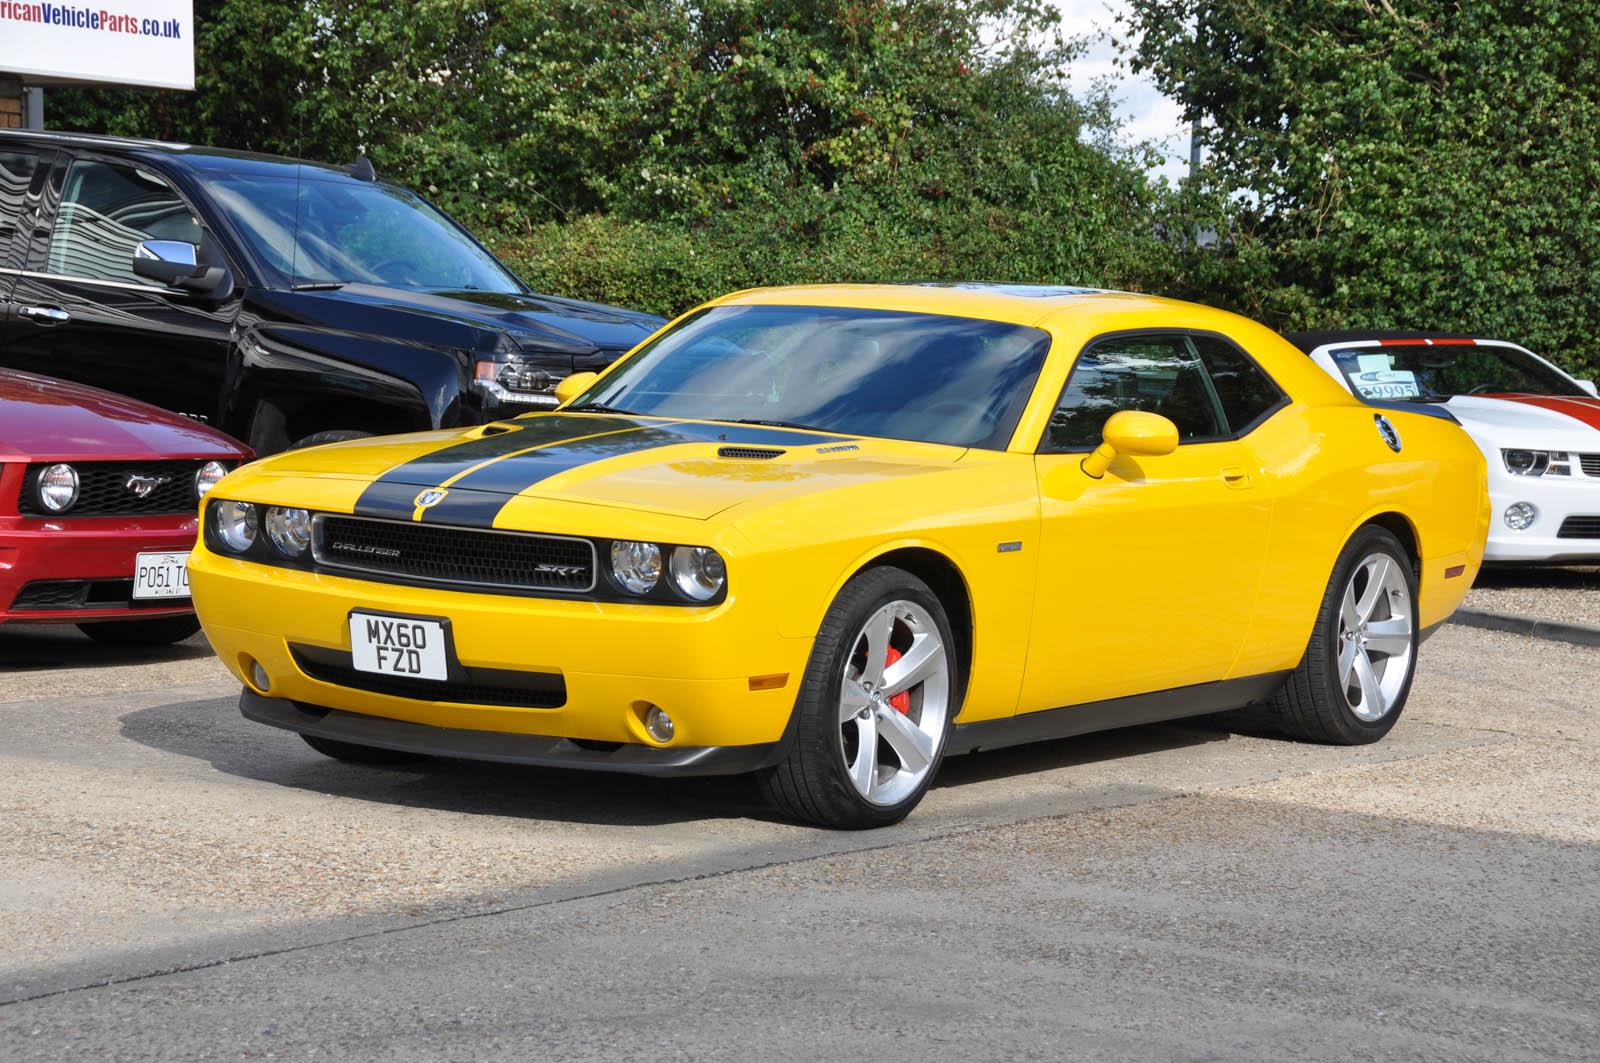 dodge challenger srt8 2010 auto 23 000 miles 6 1 litre v8. Black Bedroom Furniture Sets. Home Design Ideas